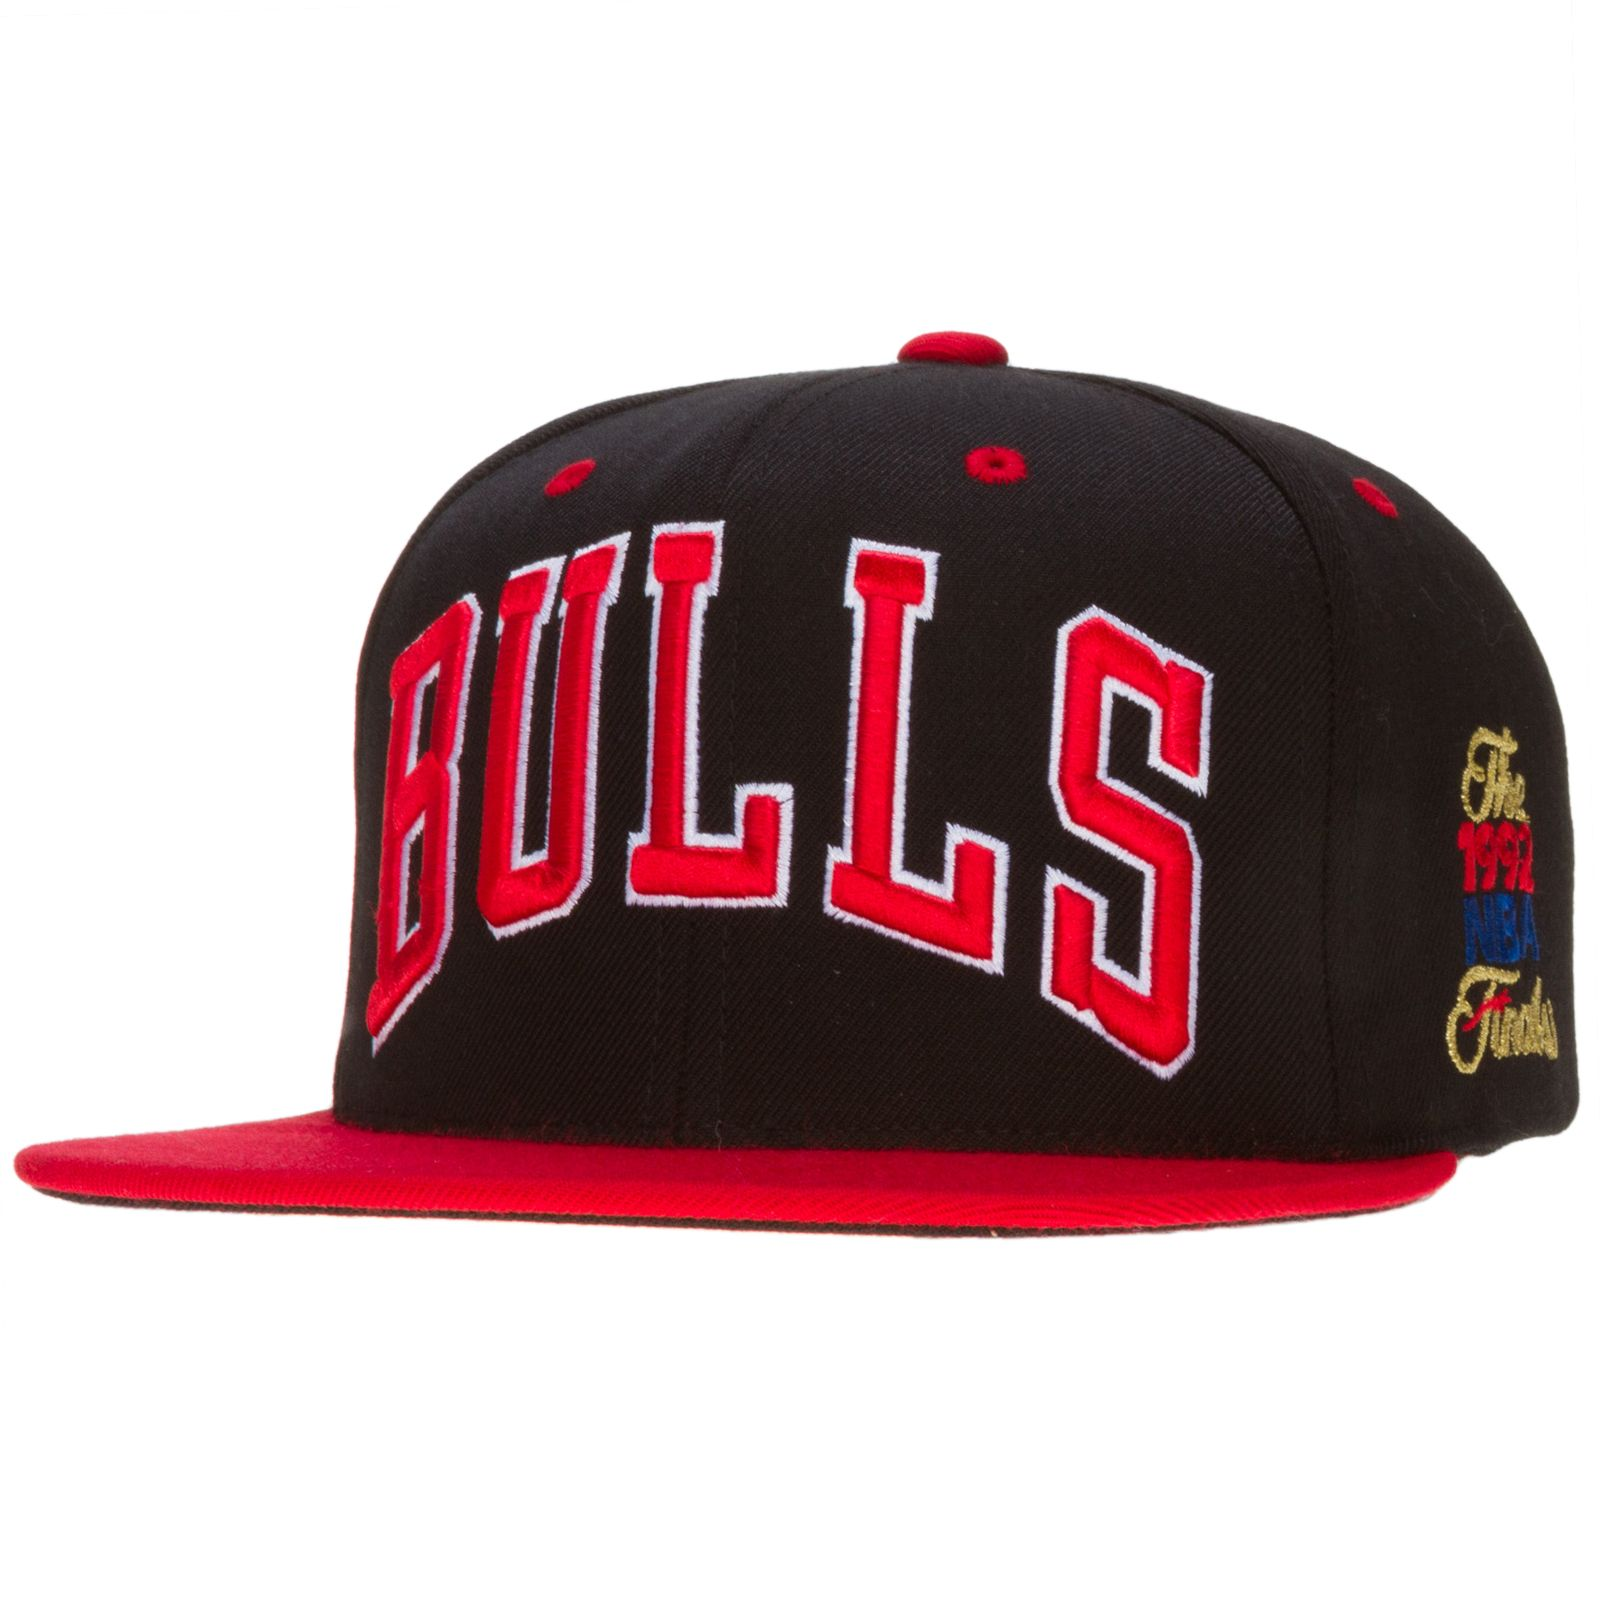 8a5094592b3 Chicago Bulls Black and Red